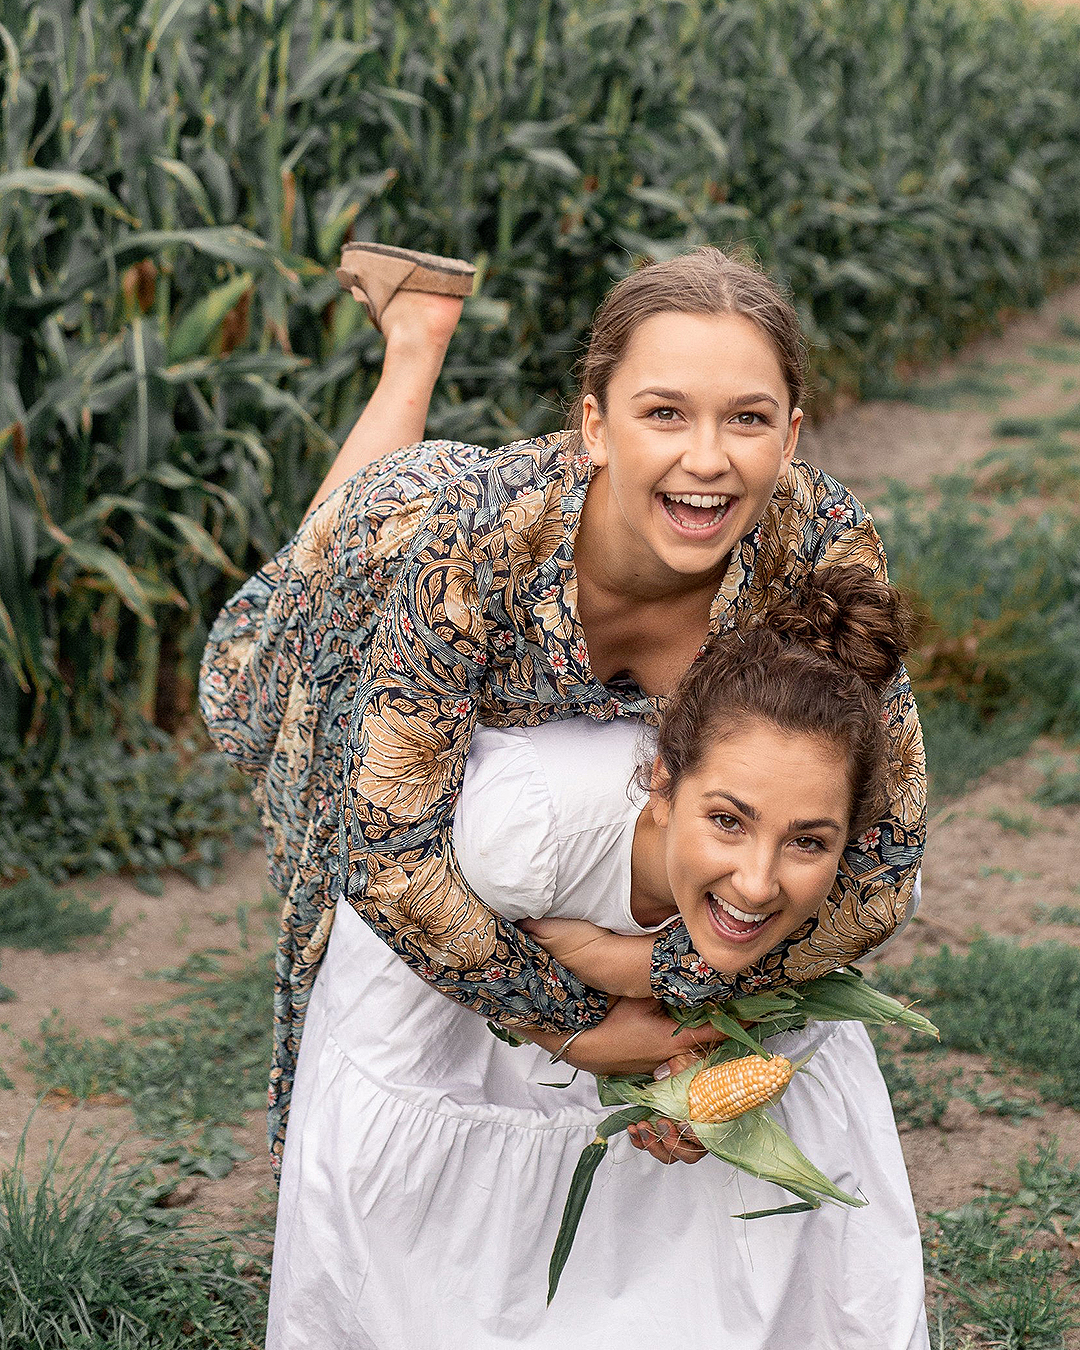 Margo and Rosa play around in a field.